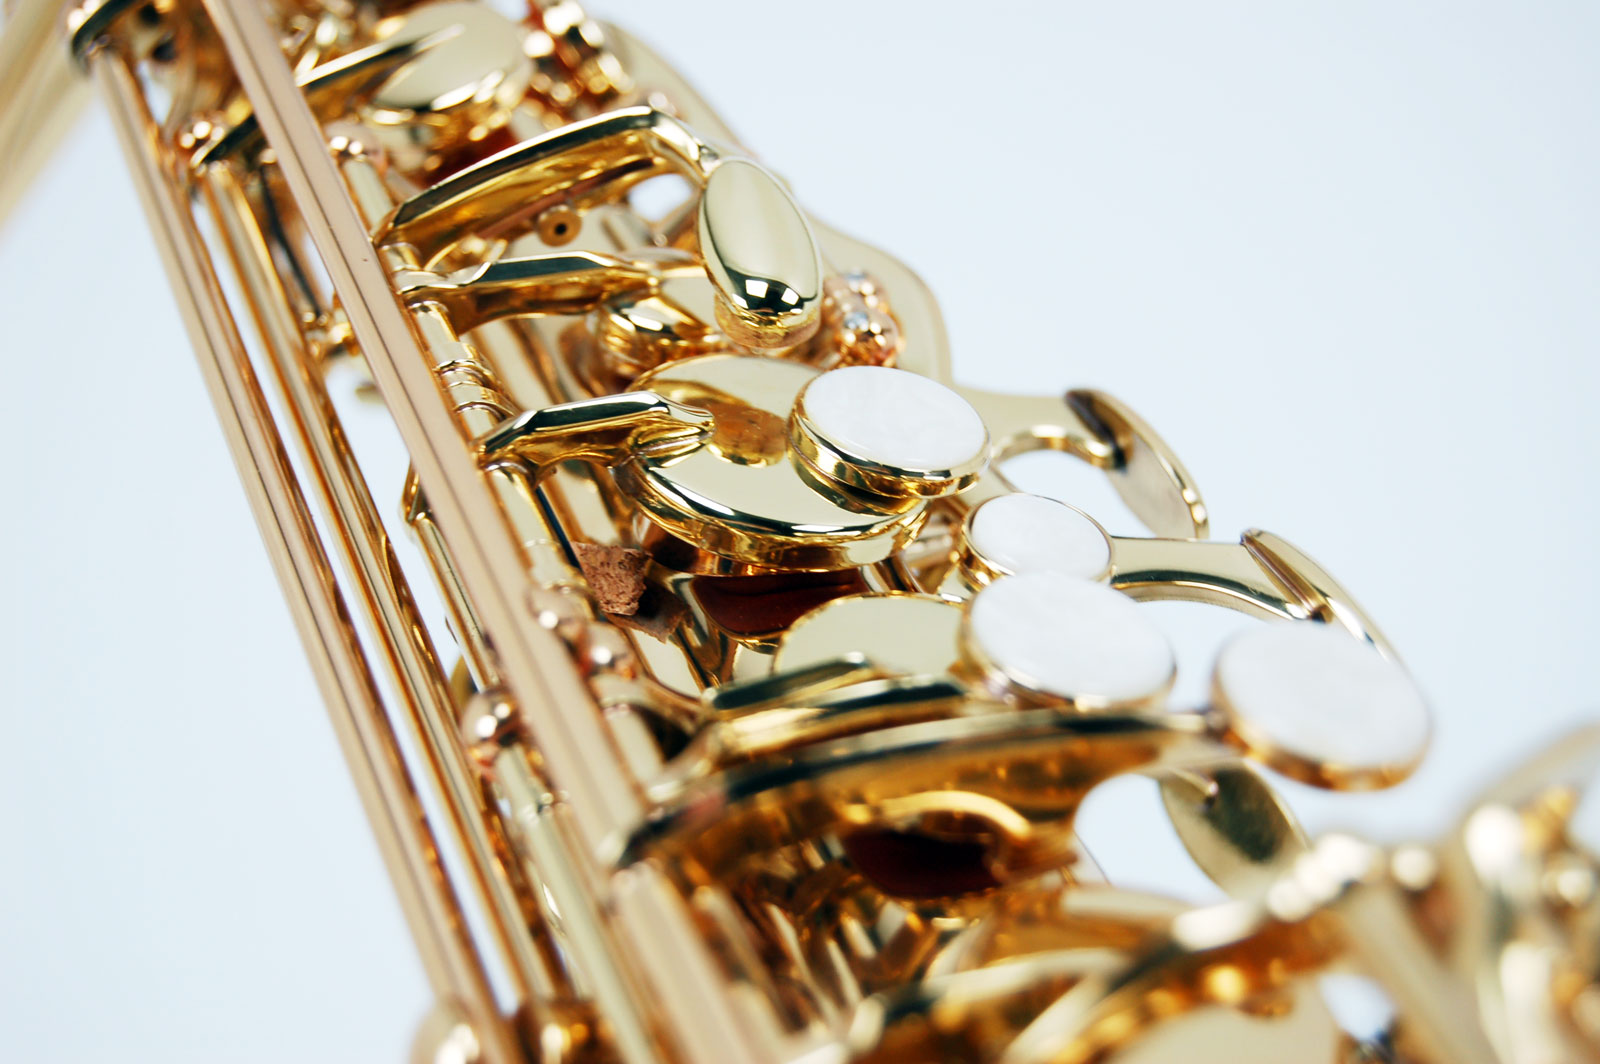 Concertino for Soprano Saxophone